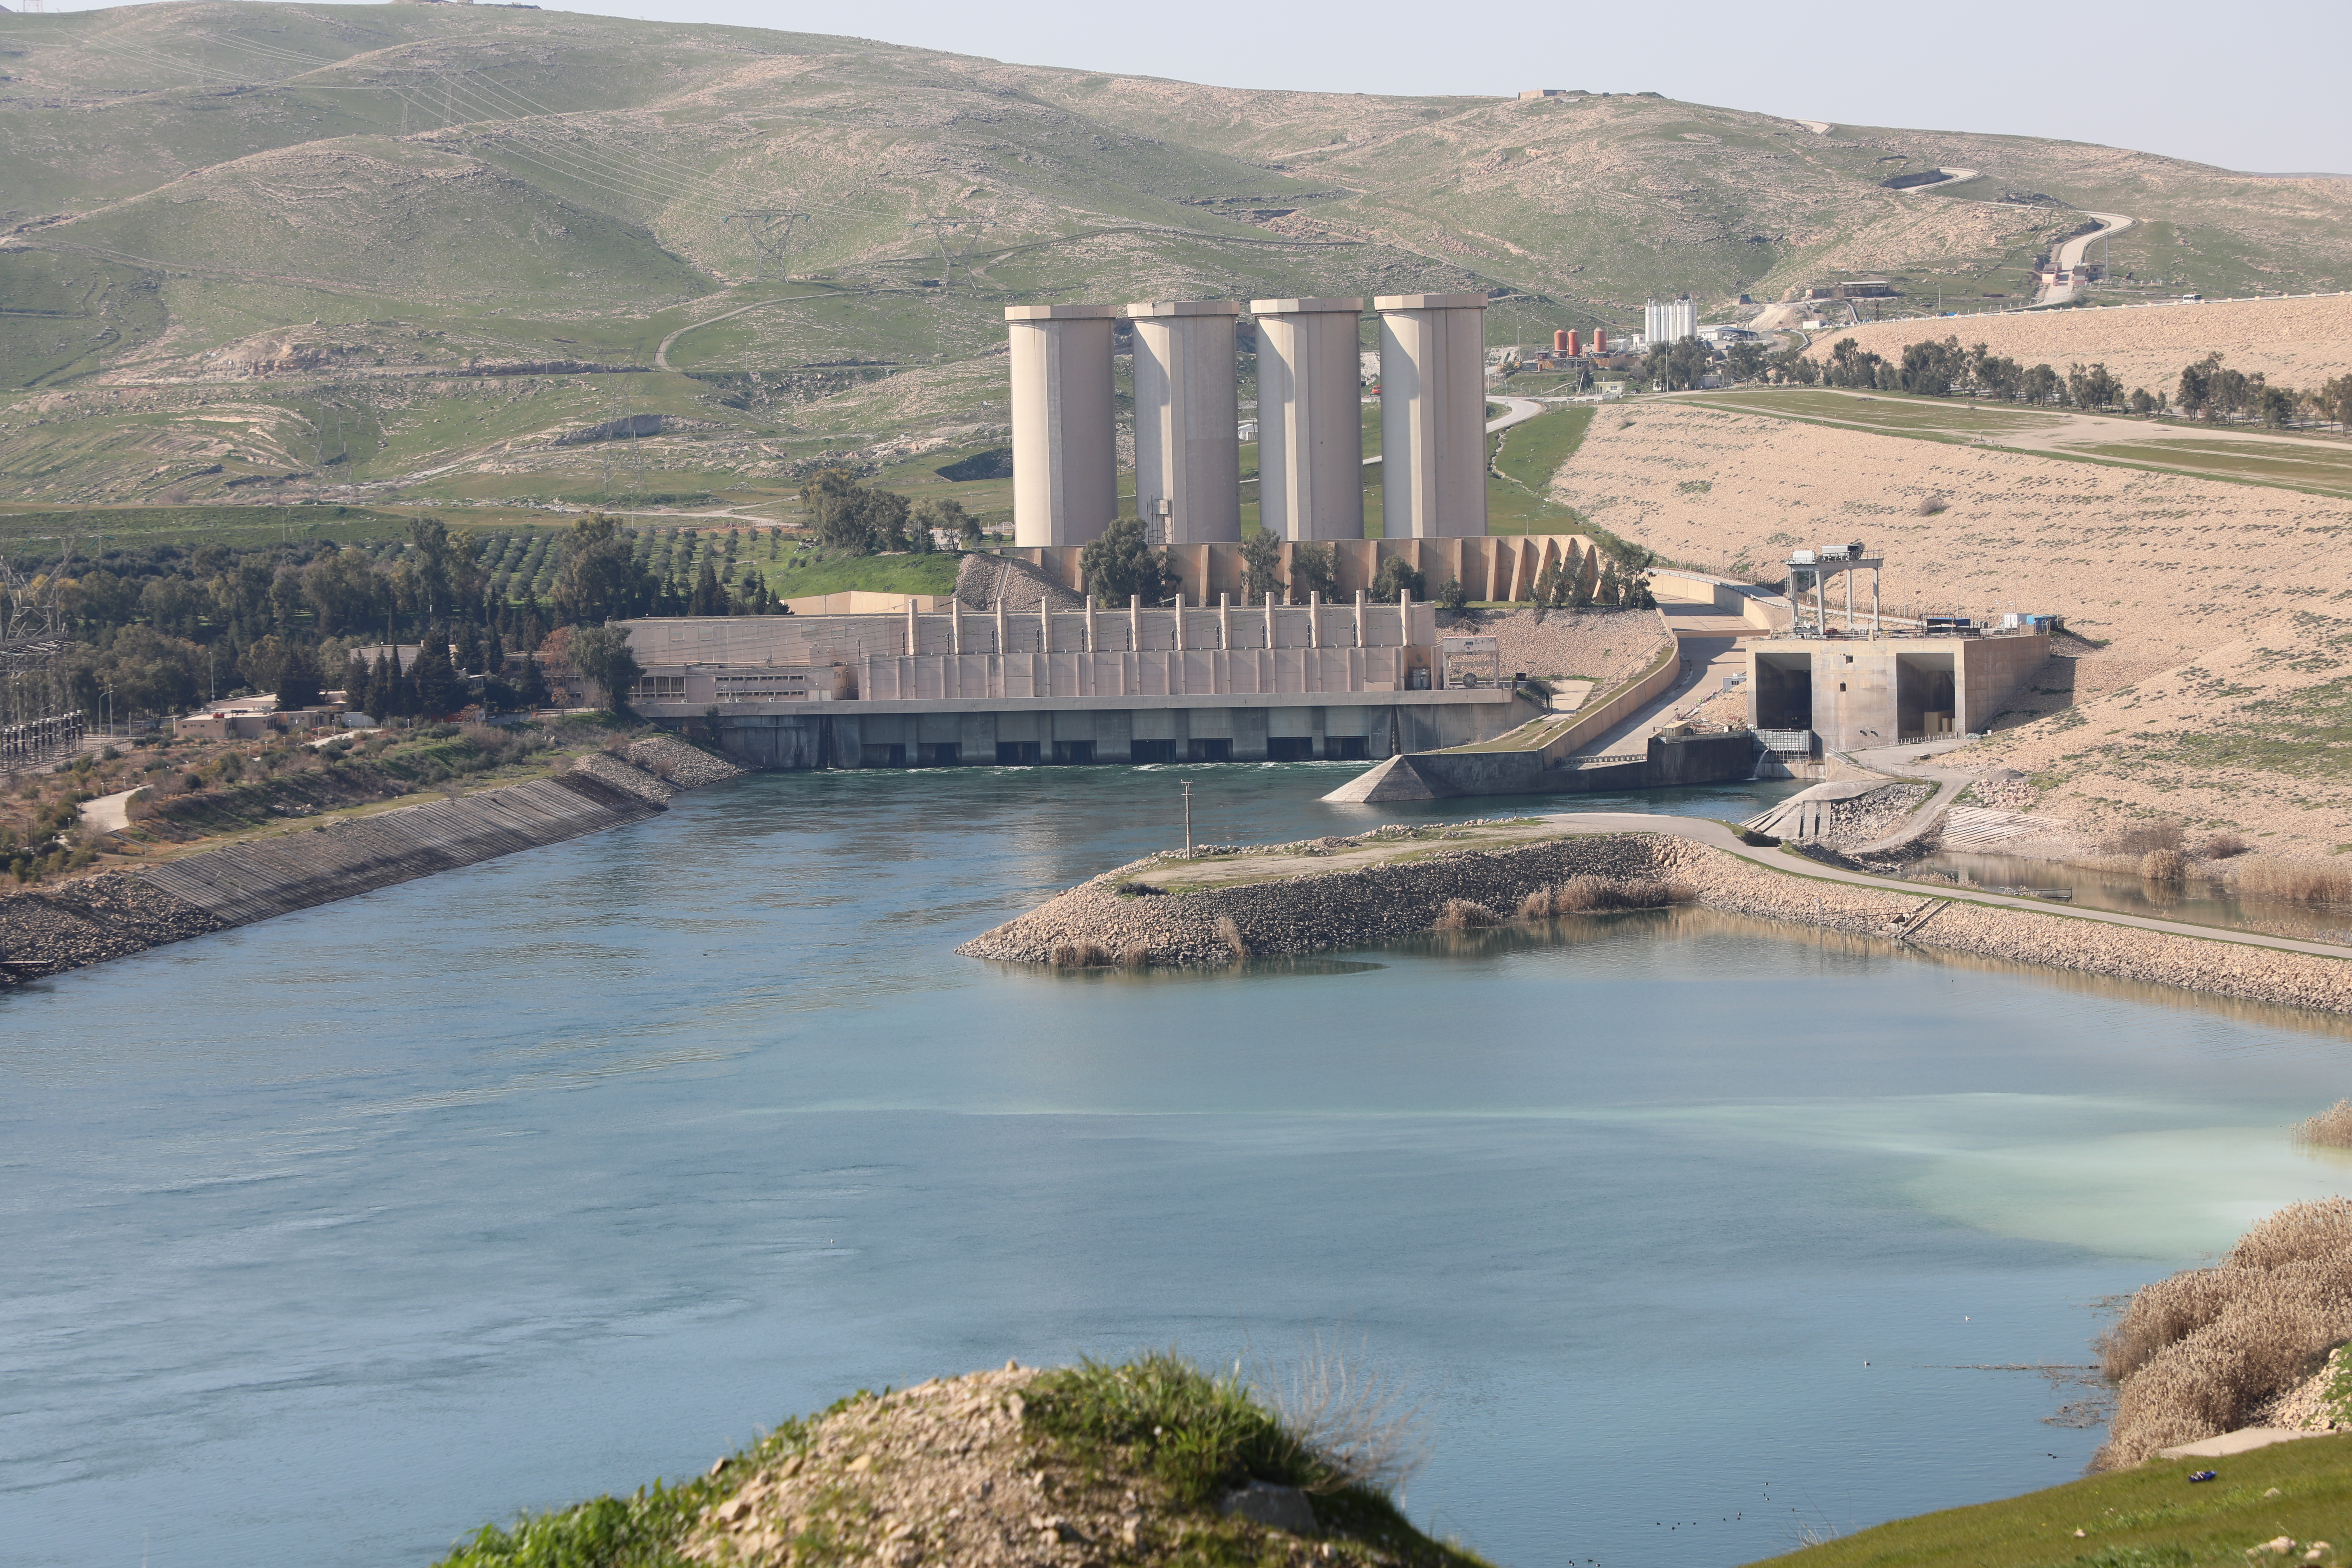 Mosul Dam Photo Collection